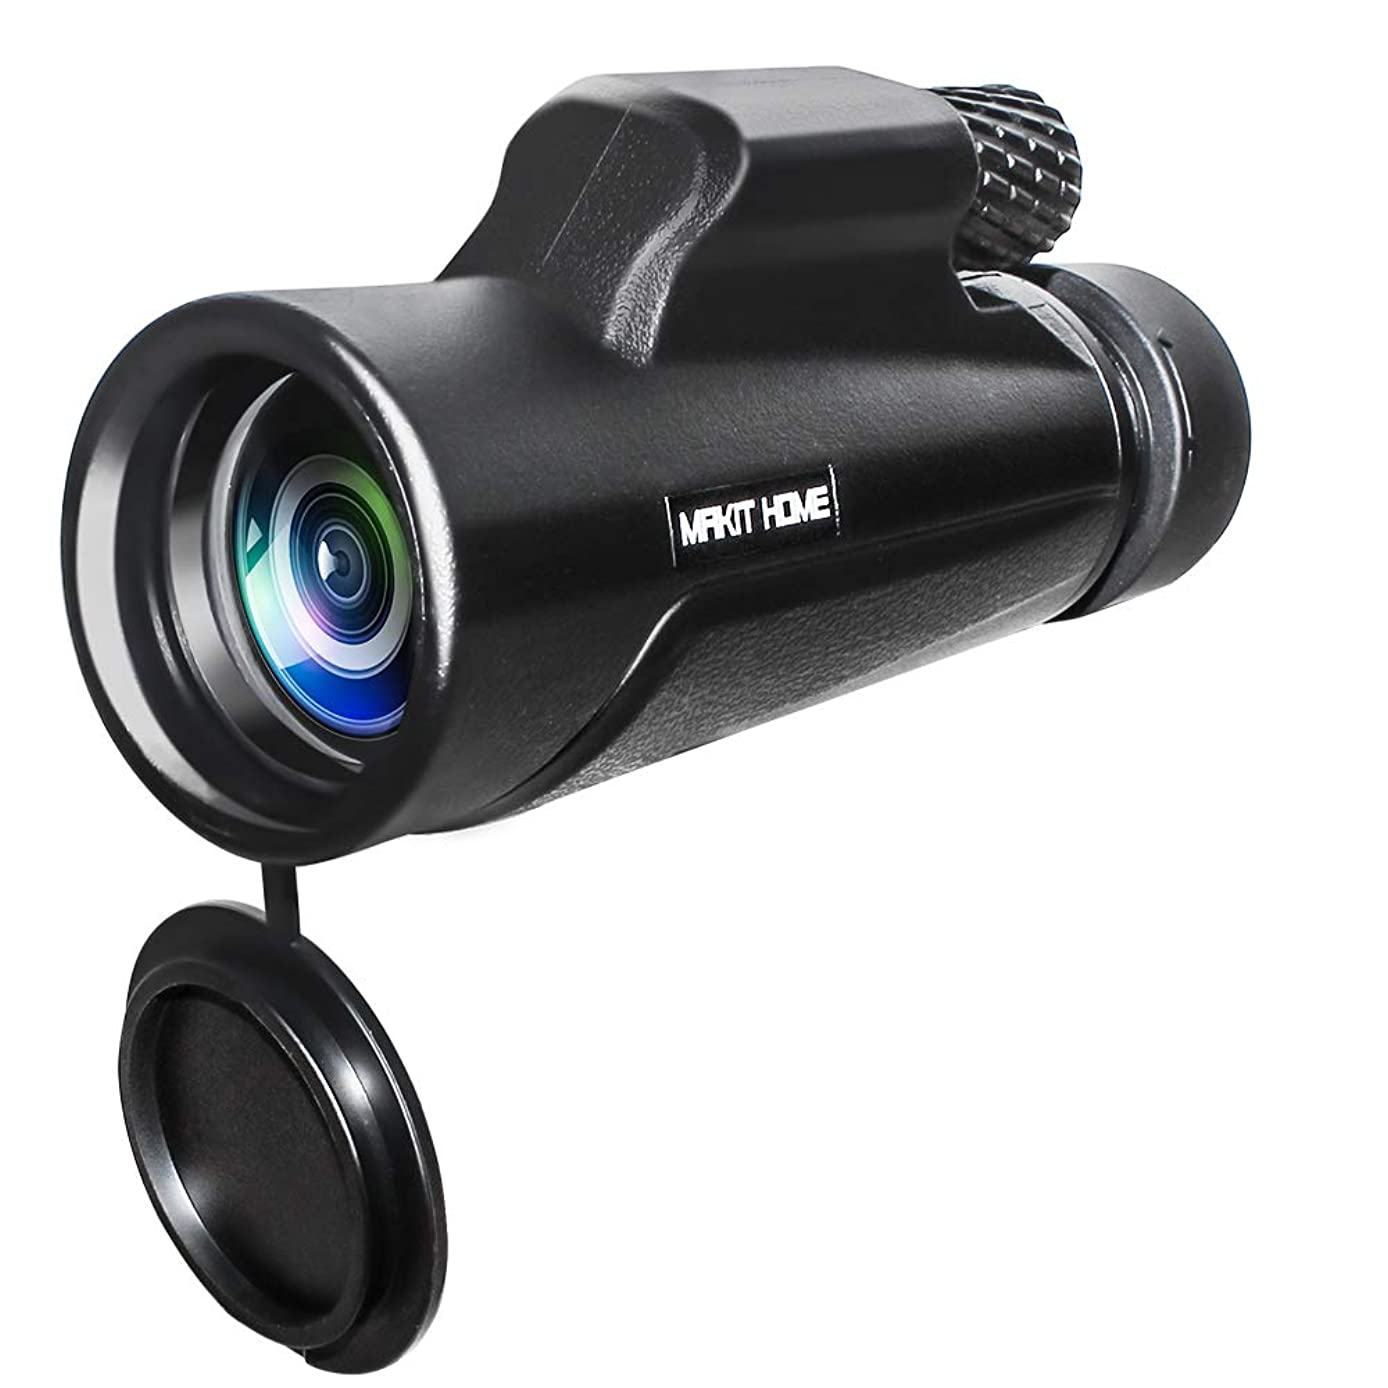 Monocular Telescope 10X42 with High Power Spotting Scope Waterproof Monoculars Zoom Lens Small Compact Telescopes for iPhone Cell Phone Smartphone for Bird Watching Boating Gifts for Men Adults